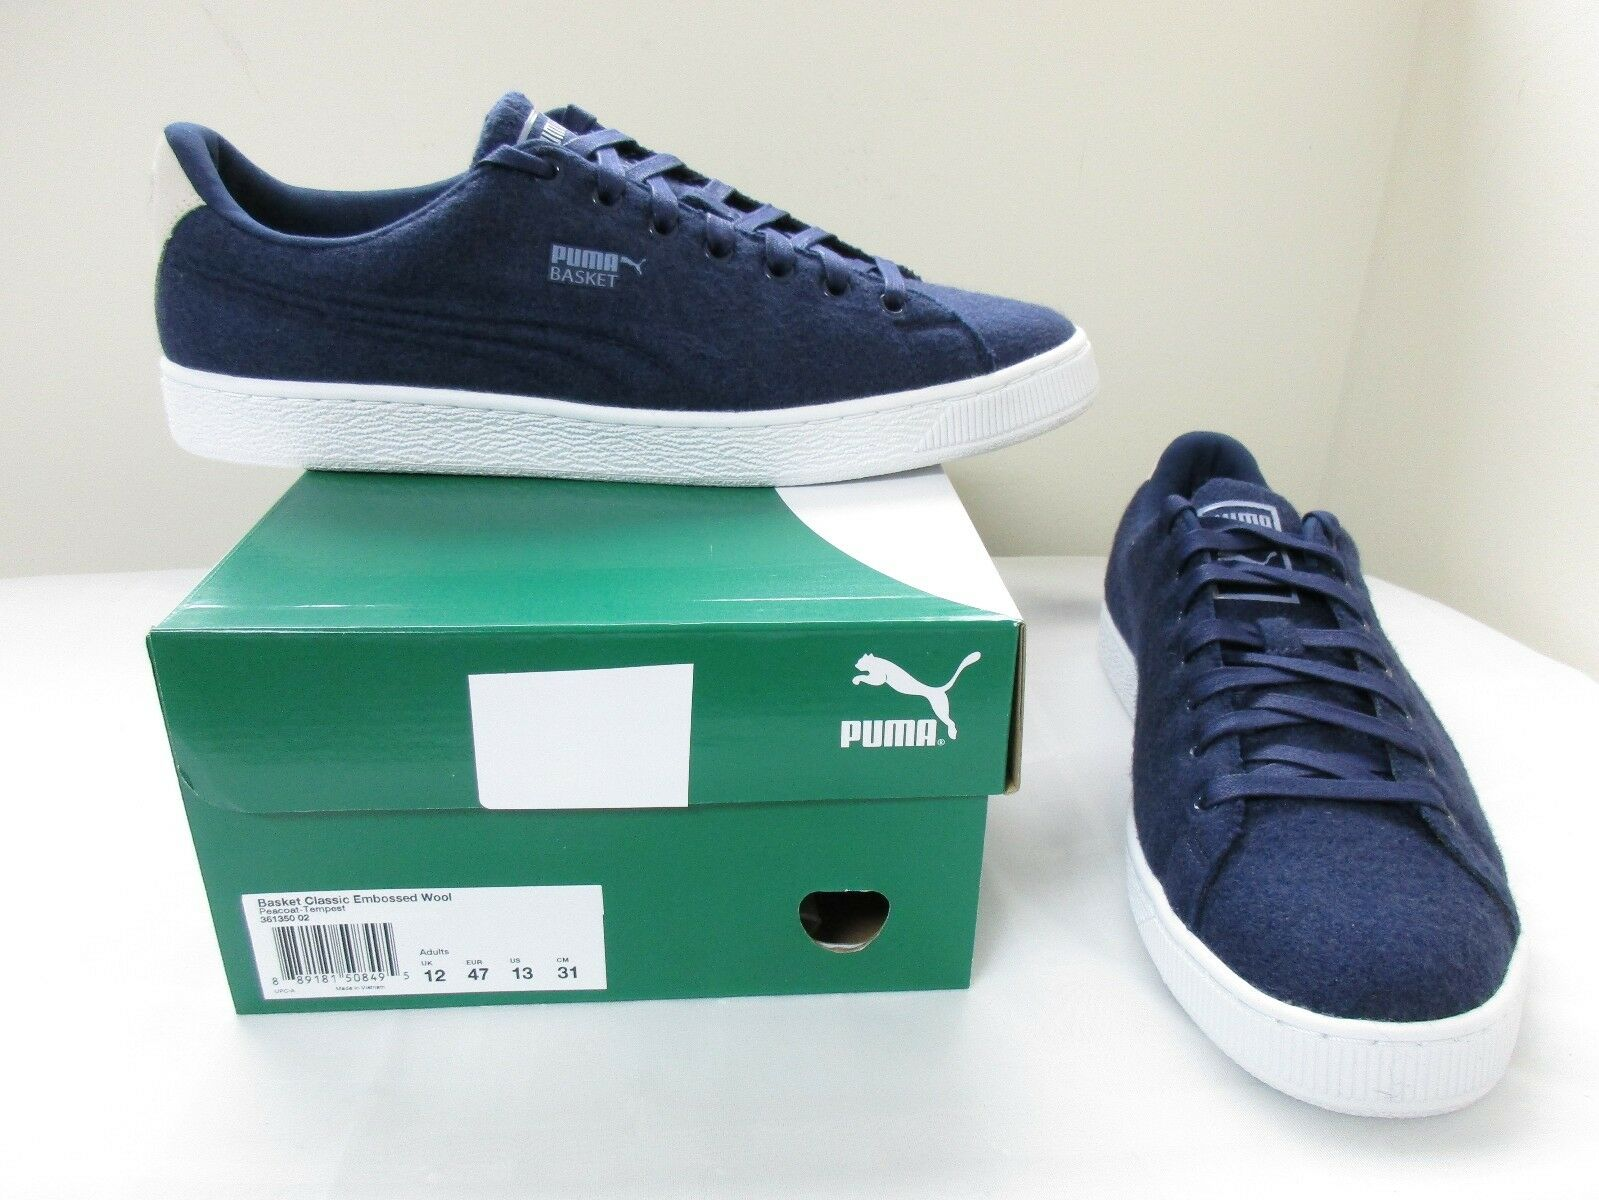 New  Men's Puma Basket Classic Embossed Wool Sneaker shoes 361350 12 Navy W74 dc